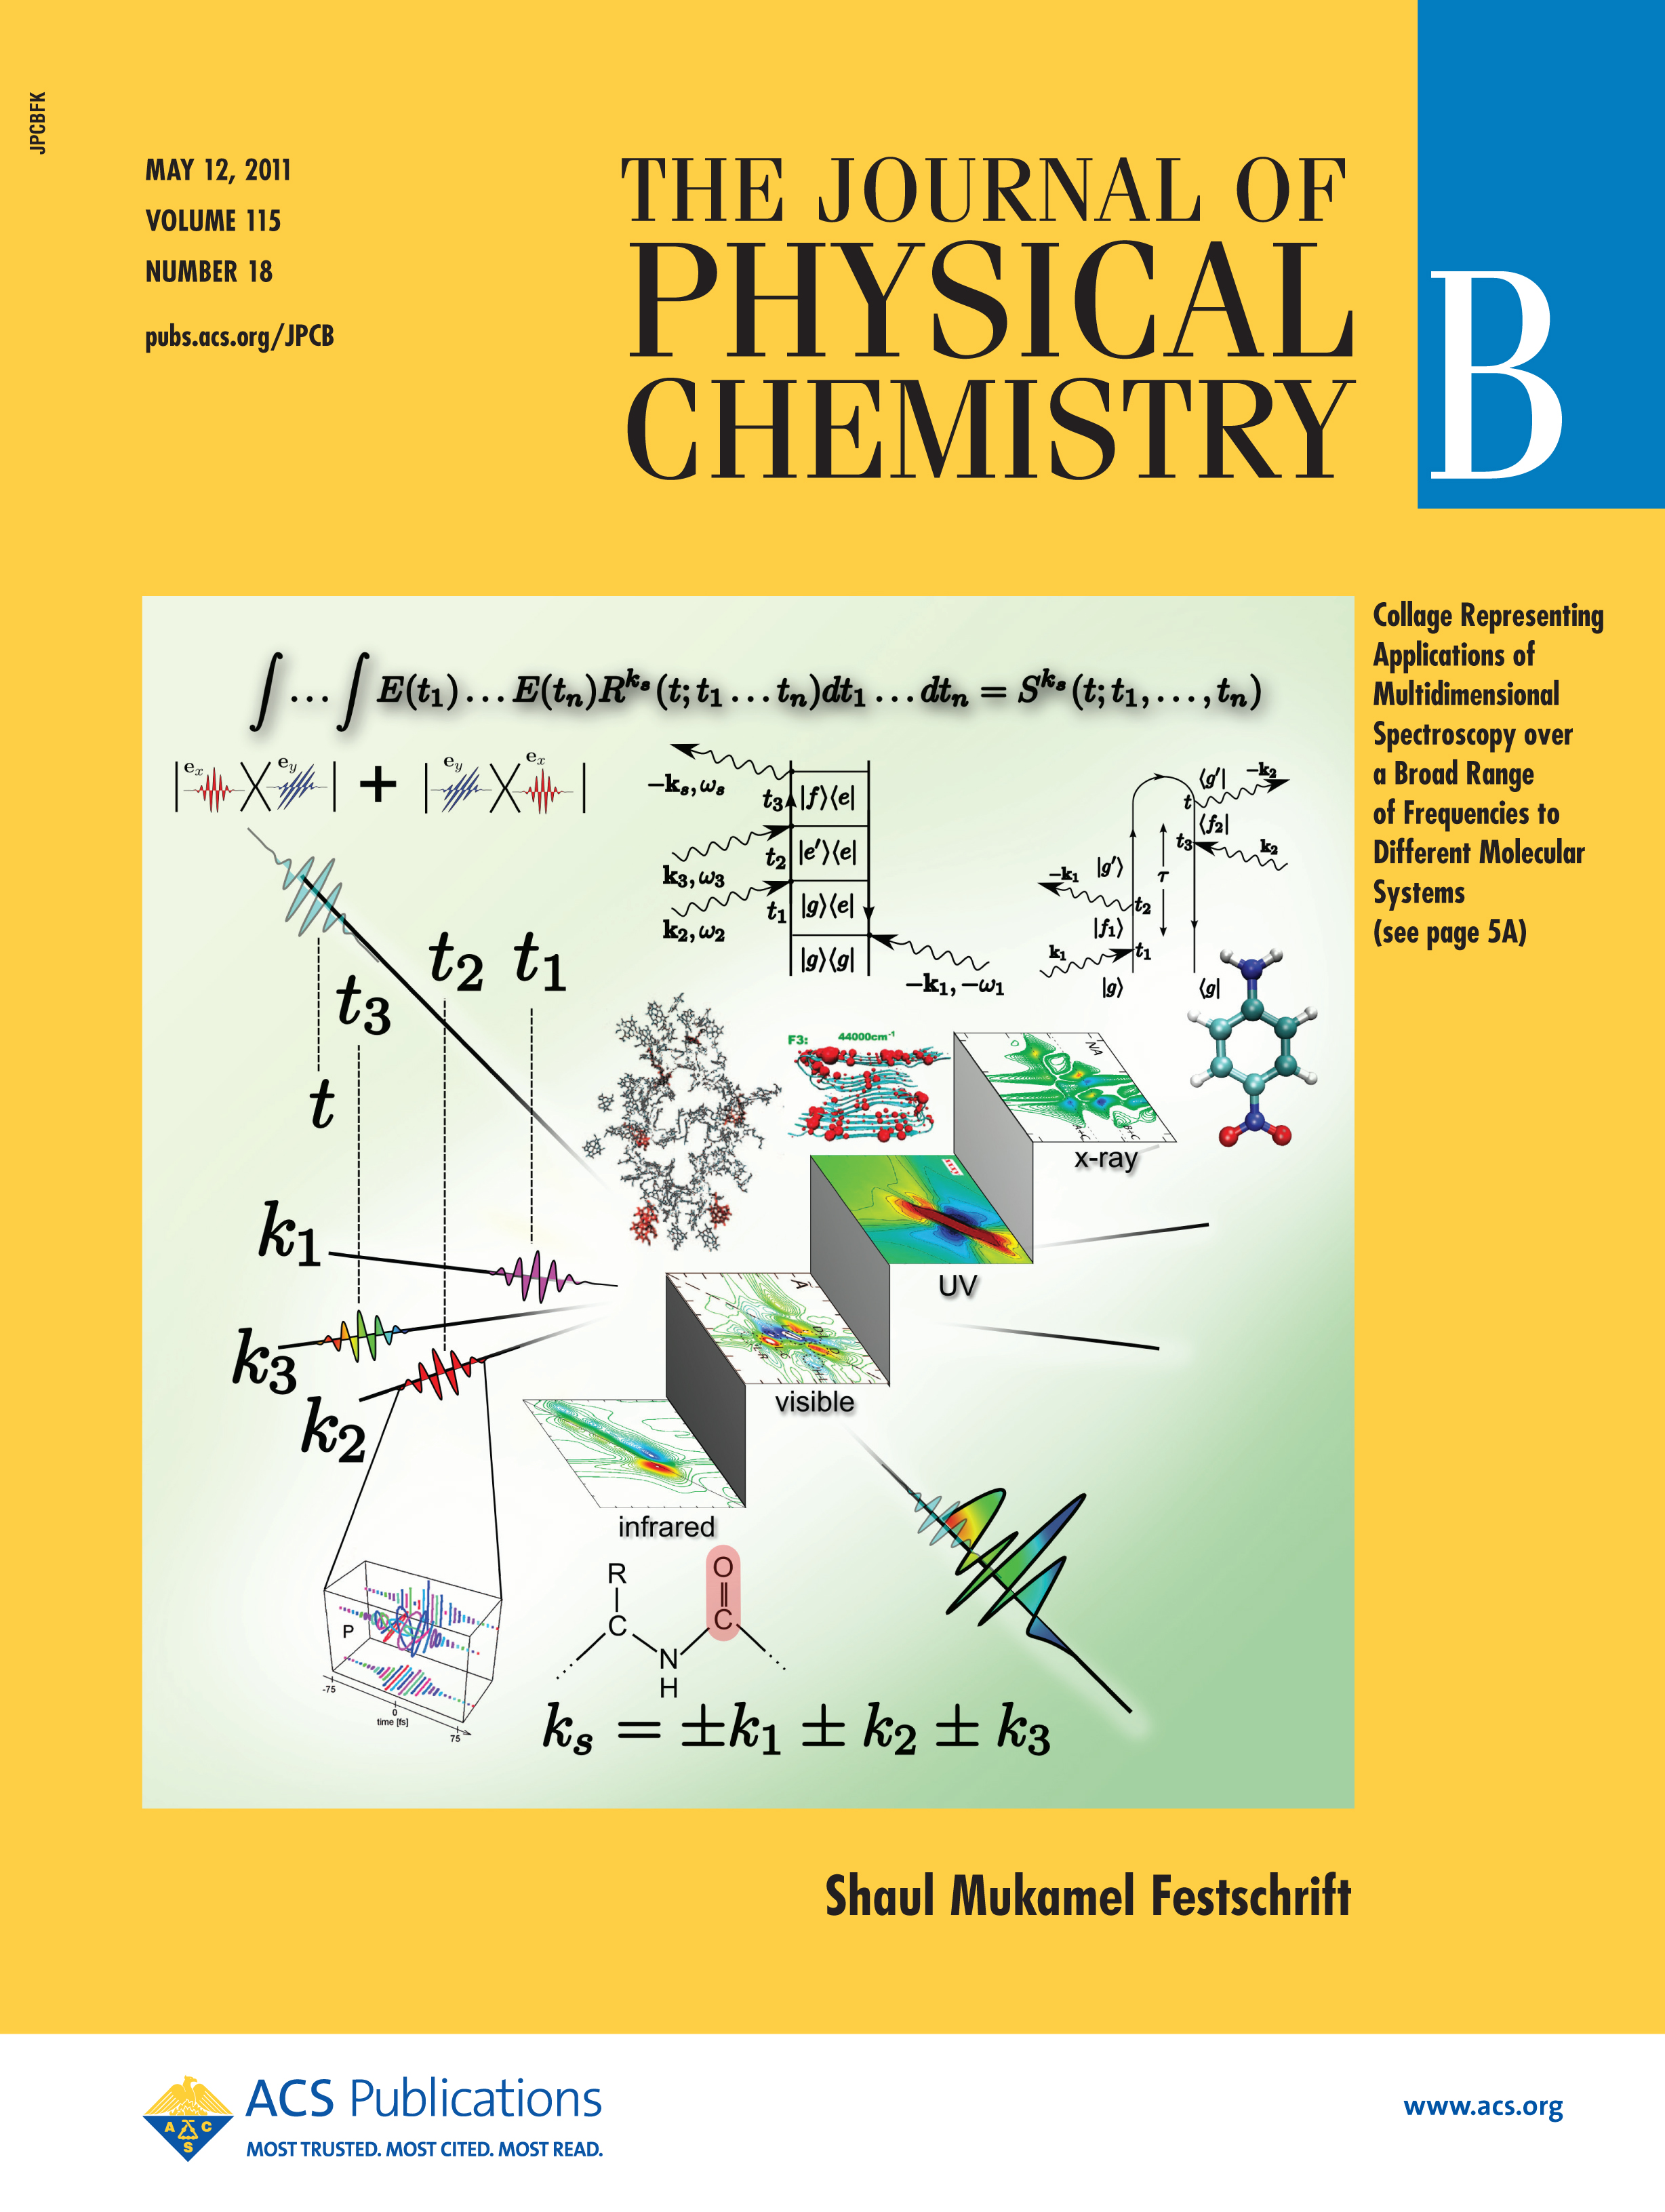 J. Phys. Chem. B - May 12, 2011 - Festschrift Cover